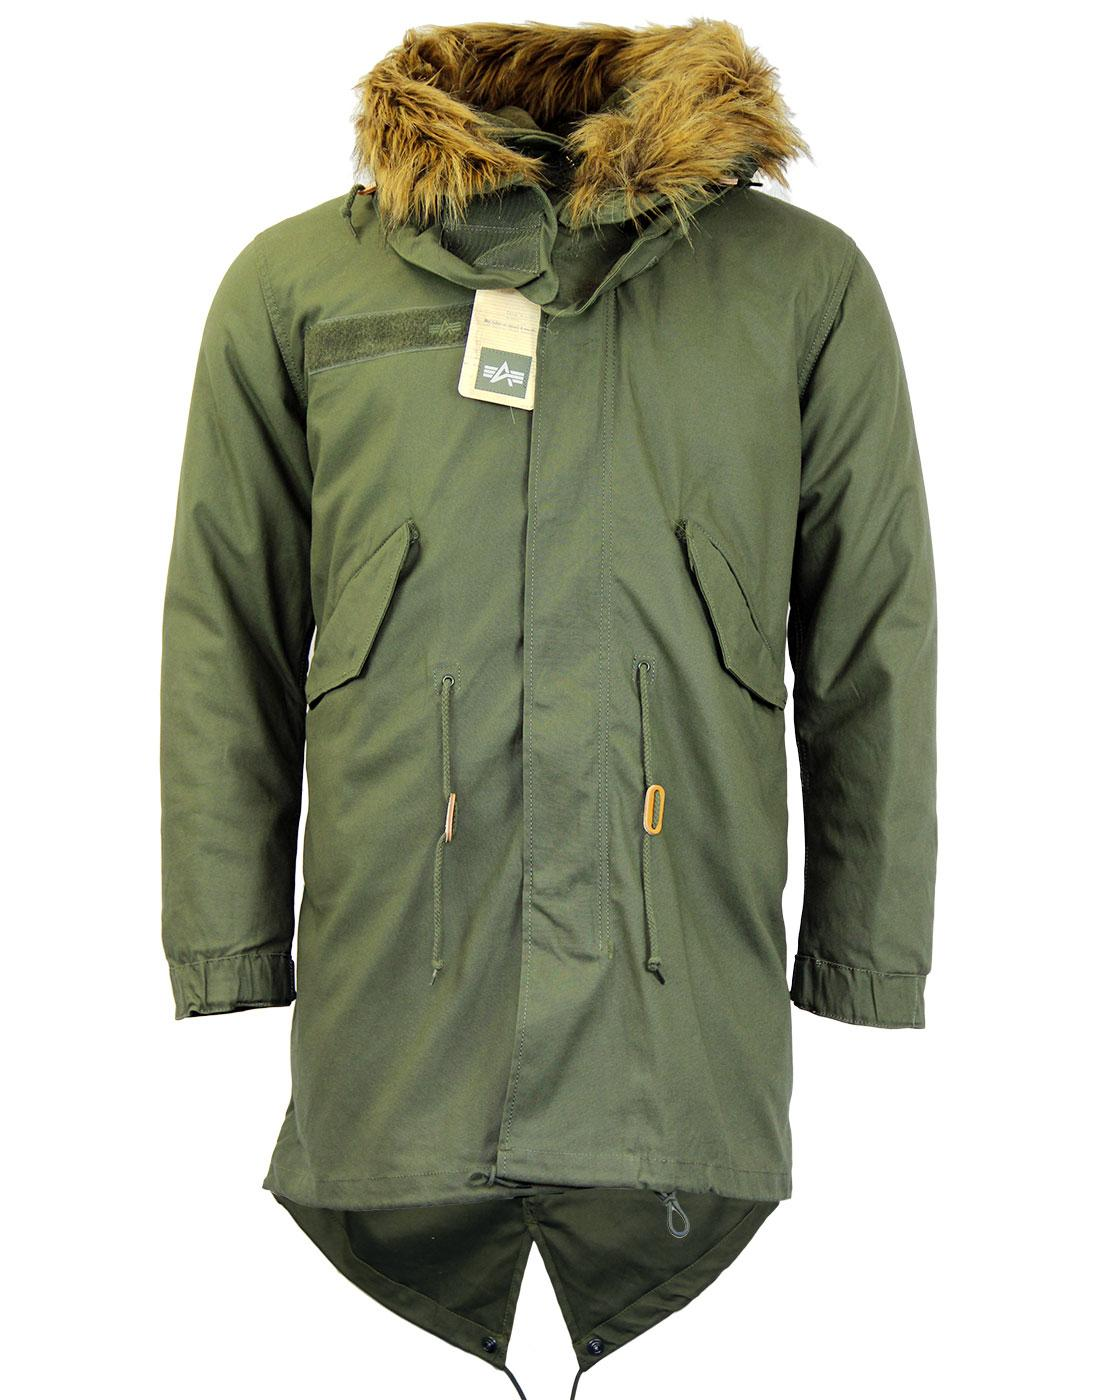 ALPHA INDUSTRIES 60s Mod Vintage Fishtail M65 Parka in Olive